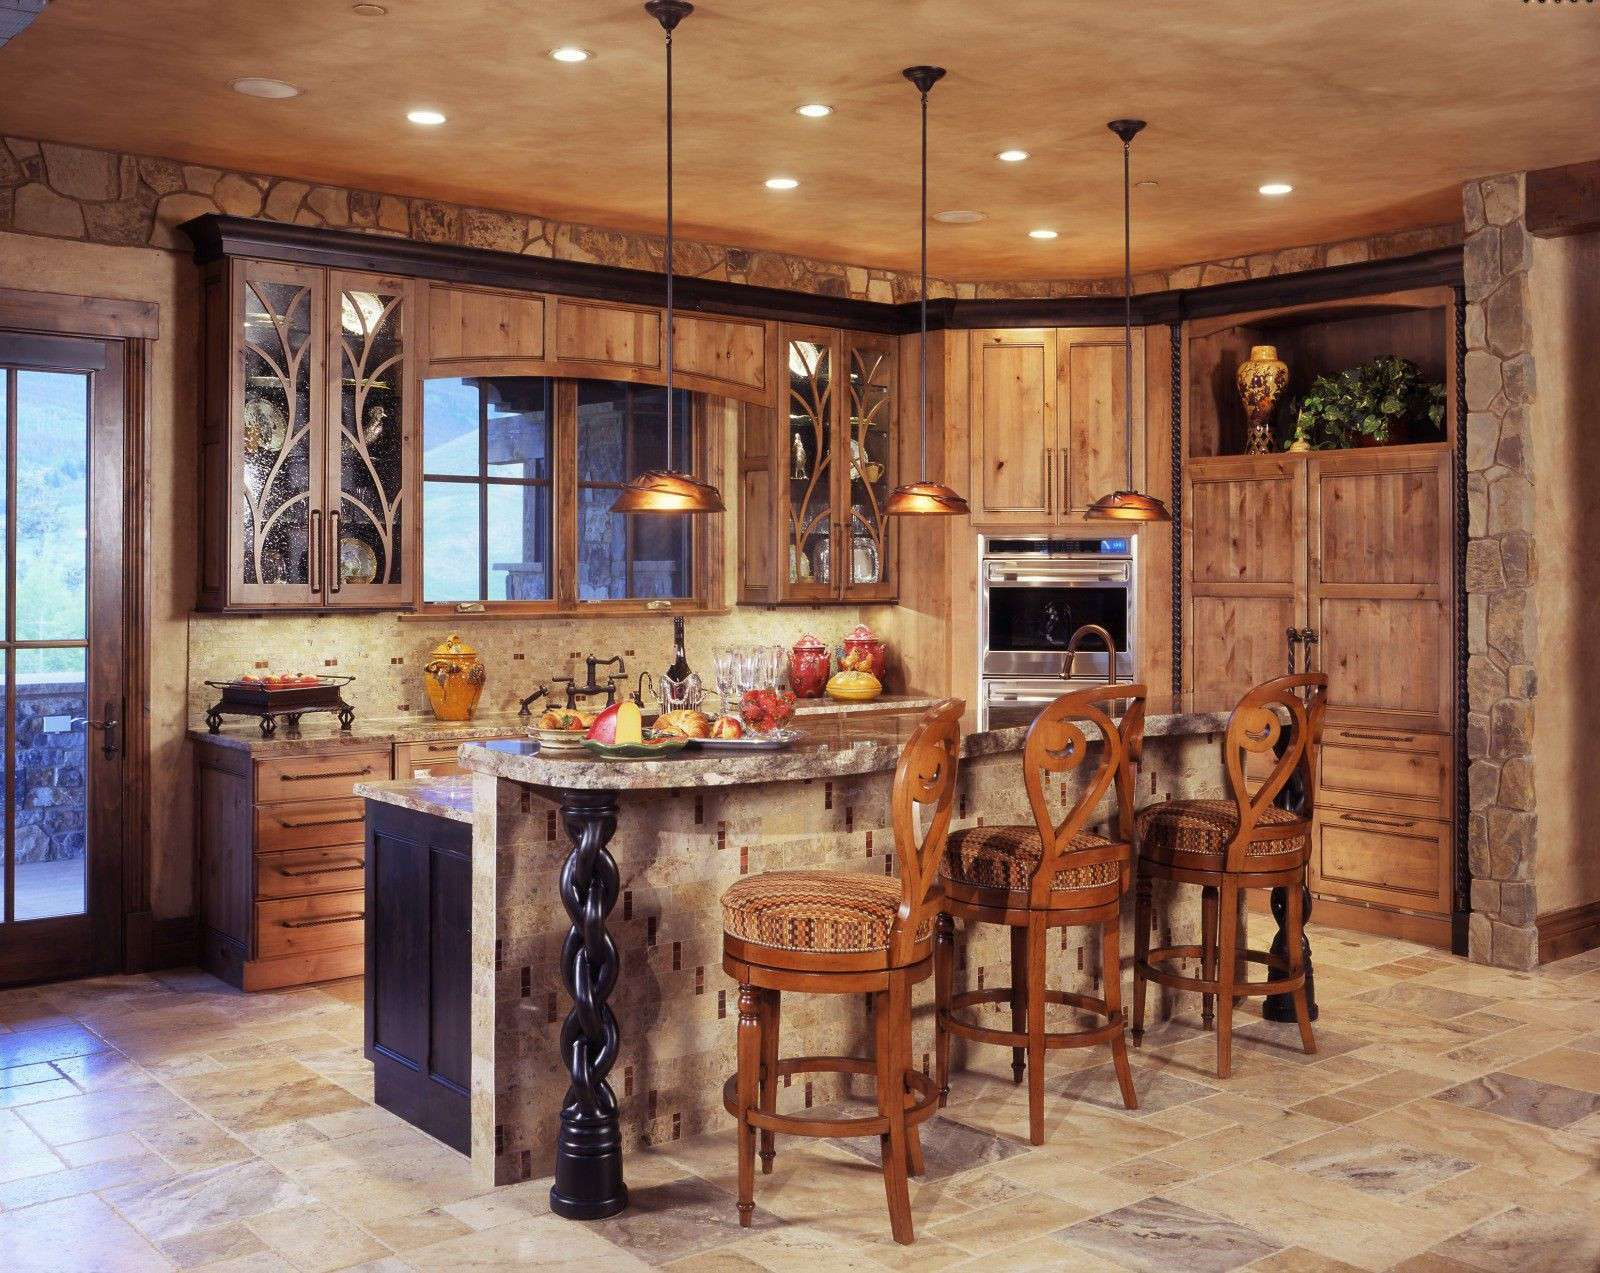 This rustic farmhouse kitchen idea carries more of an English design. Doing a photo finish on the ceiling with lighting over the island countertop with seating is a great idea.